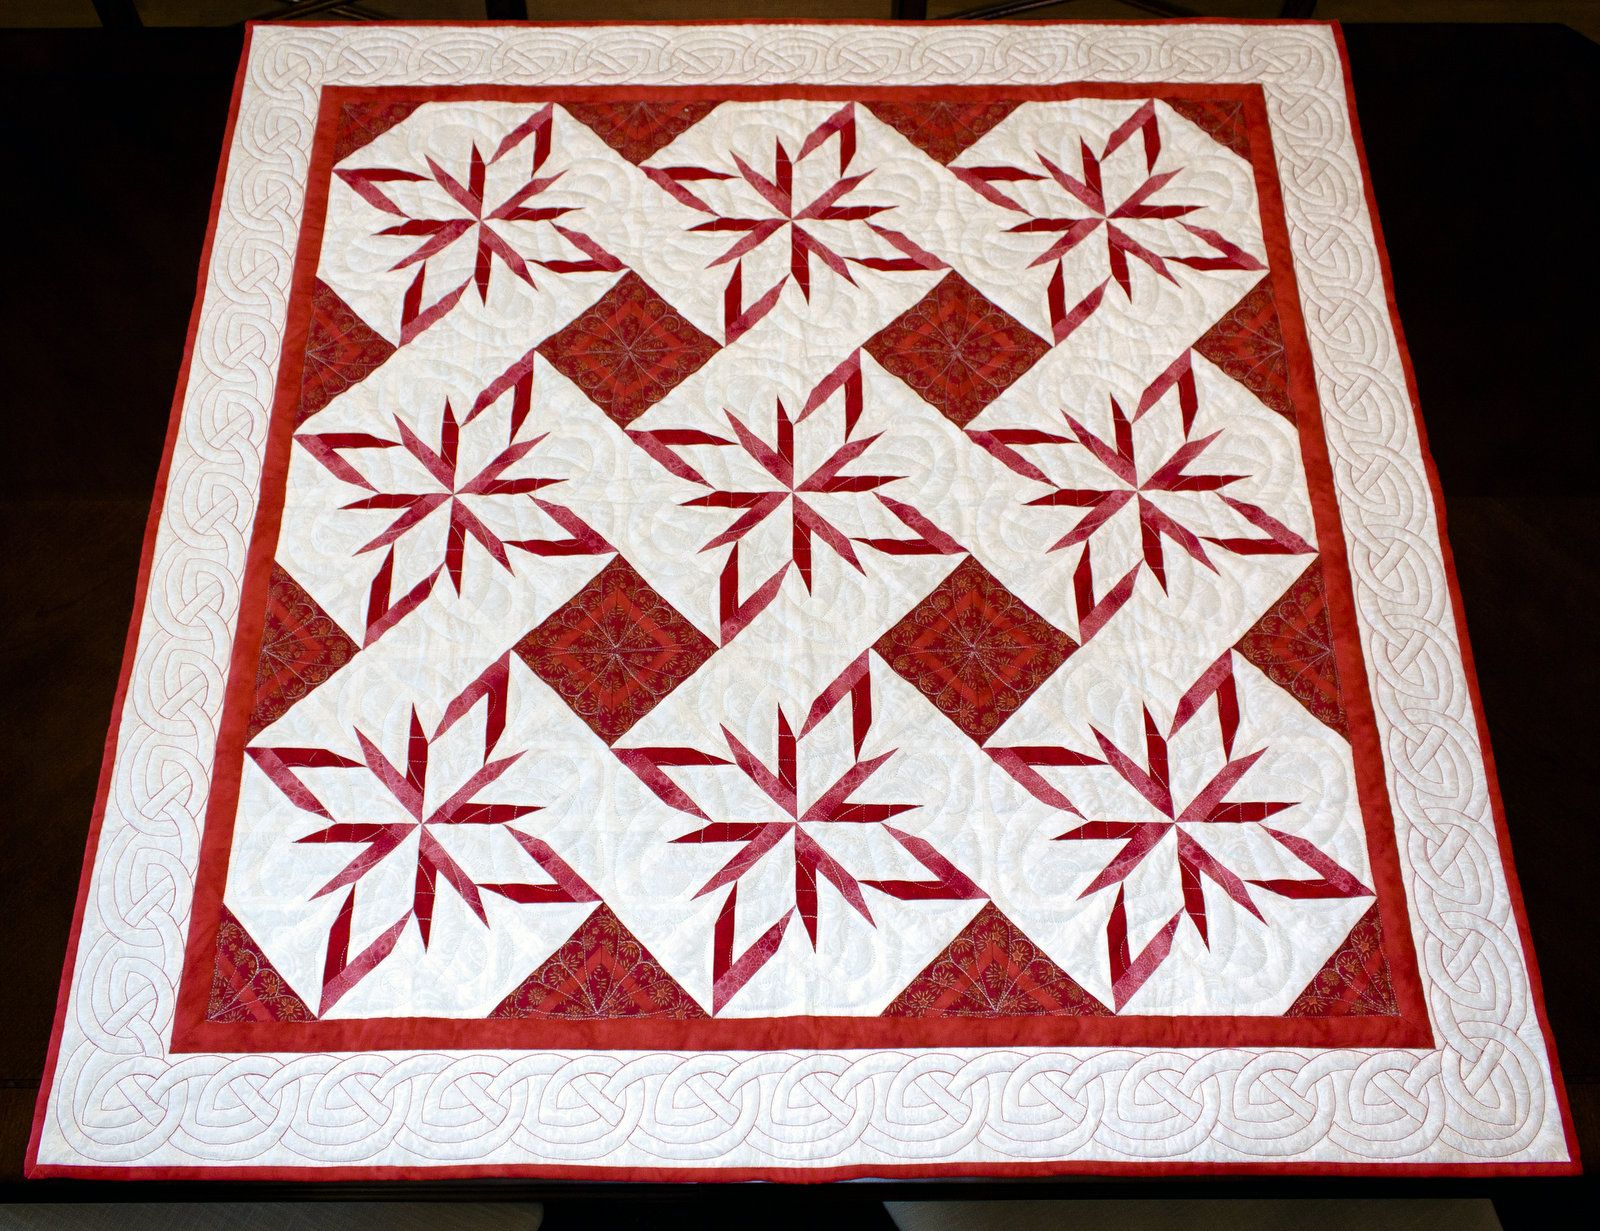 Red and White Star Quilt | Quilt Artistry StudioQuilt Artistry ... : red and white quilts - Adamdwight.com